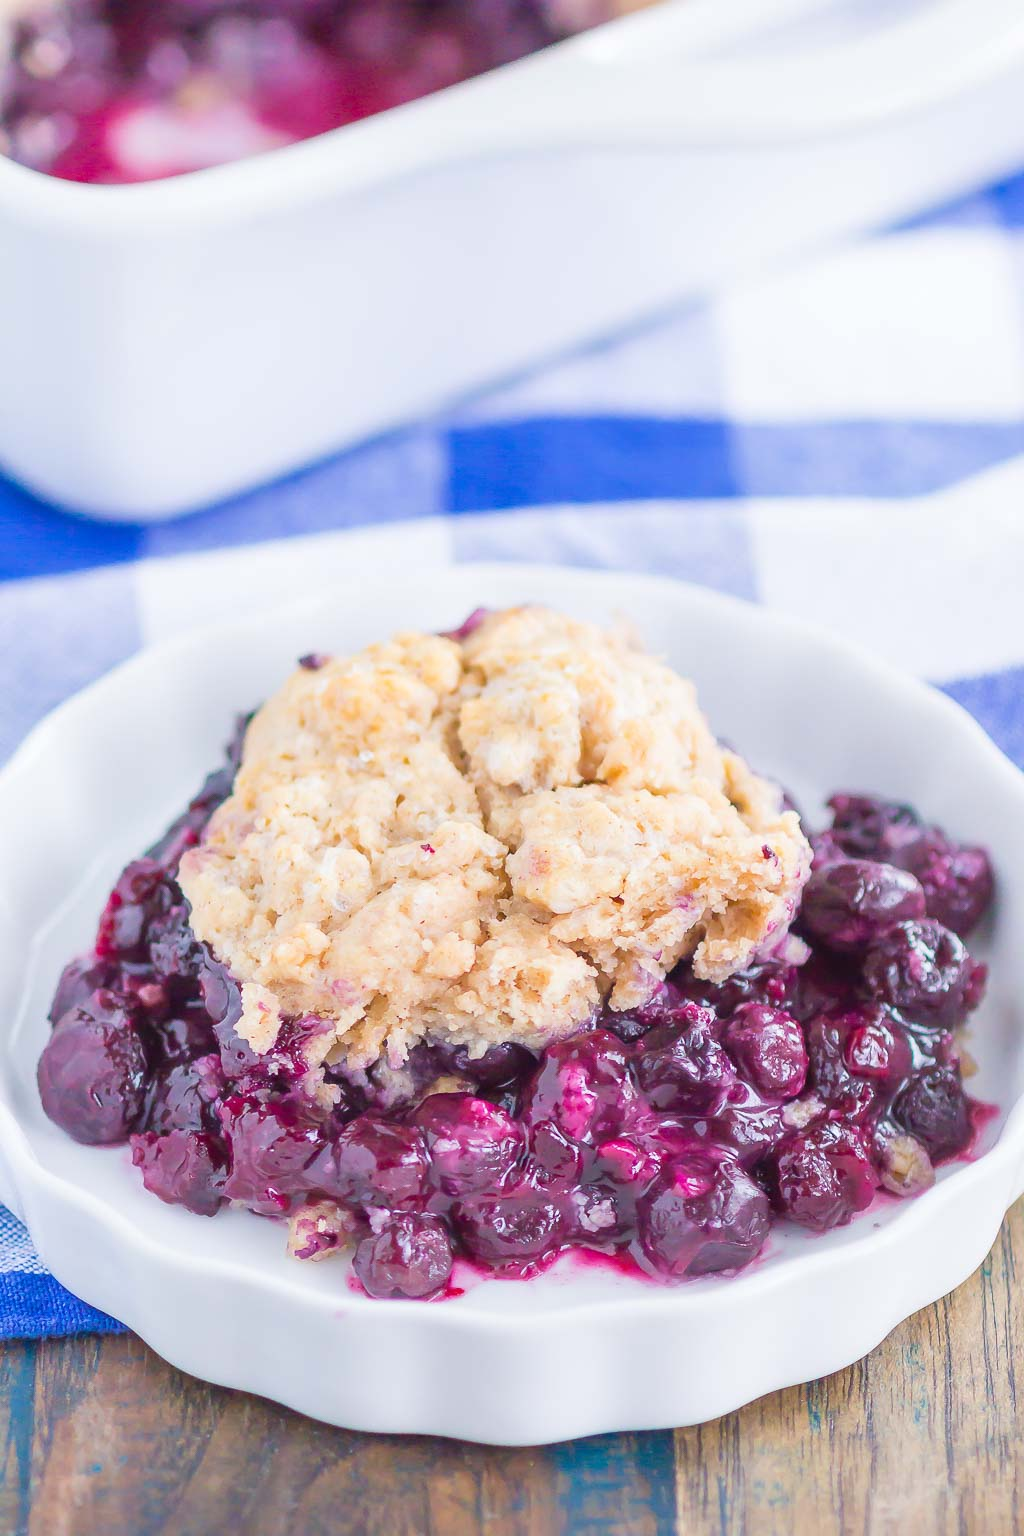 Easy Blueberry Cobbler is a simple dessert that's ready in no time. Tangy blueberries are tossed with cozy spices and then sprinkled with a buttery, cinnamon sugar cake-like topping. Easy to make and loaded with flavor, this cozy cobbler is perfect to enjoy all year long! #cobbler #blueberrycobbler #blueberrydessert